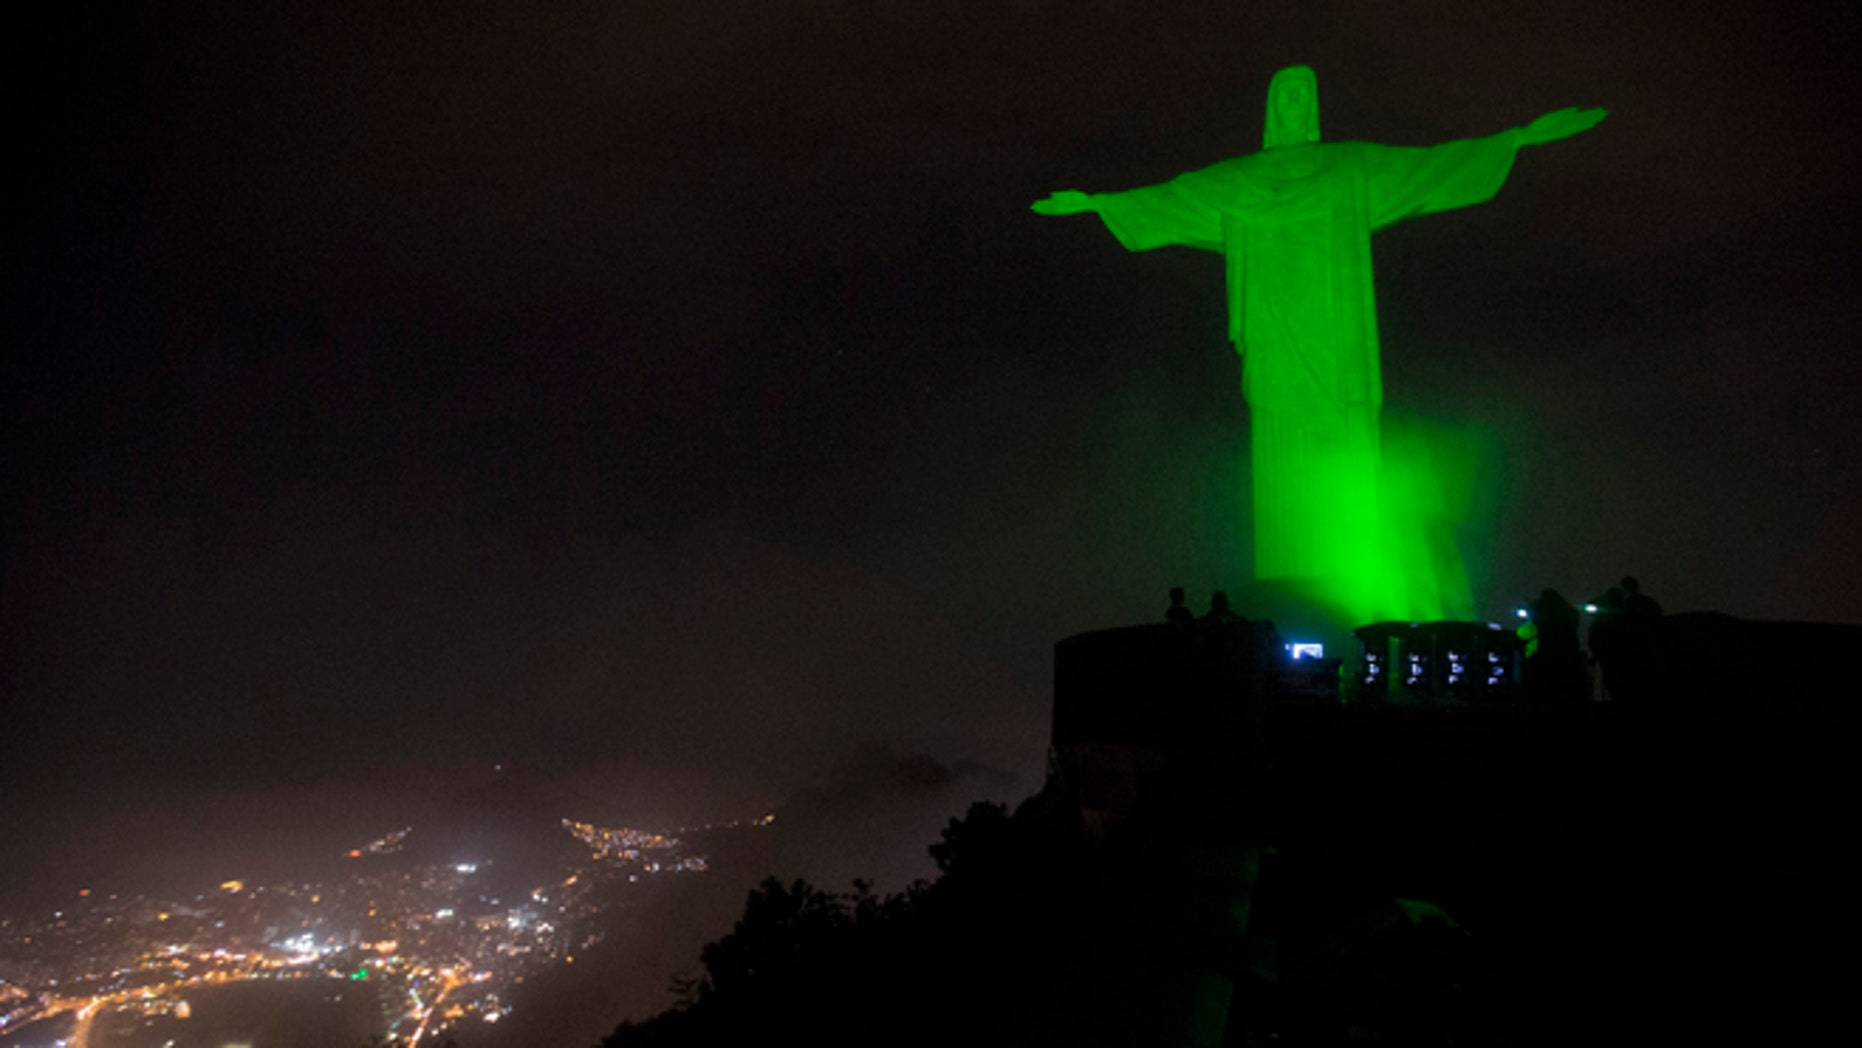 The Christ the Redeemer statue is lit up in green as a symbolic warning of the dangers of climate change, in Rio de Janeiro, Brazil, Thursday, Sept. 18, 2014. This event is in support of the Global Peoples Climate March, scheduled for the next Sunday, which is asking for solutions to combat global climate change, in advance of the United Nations Climate Summit to be held on September 23. (AP Photo/Silvia Izquierdo)